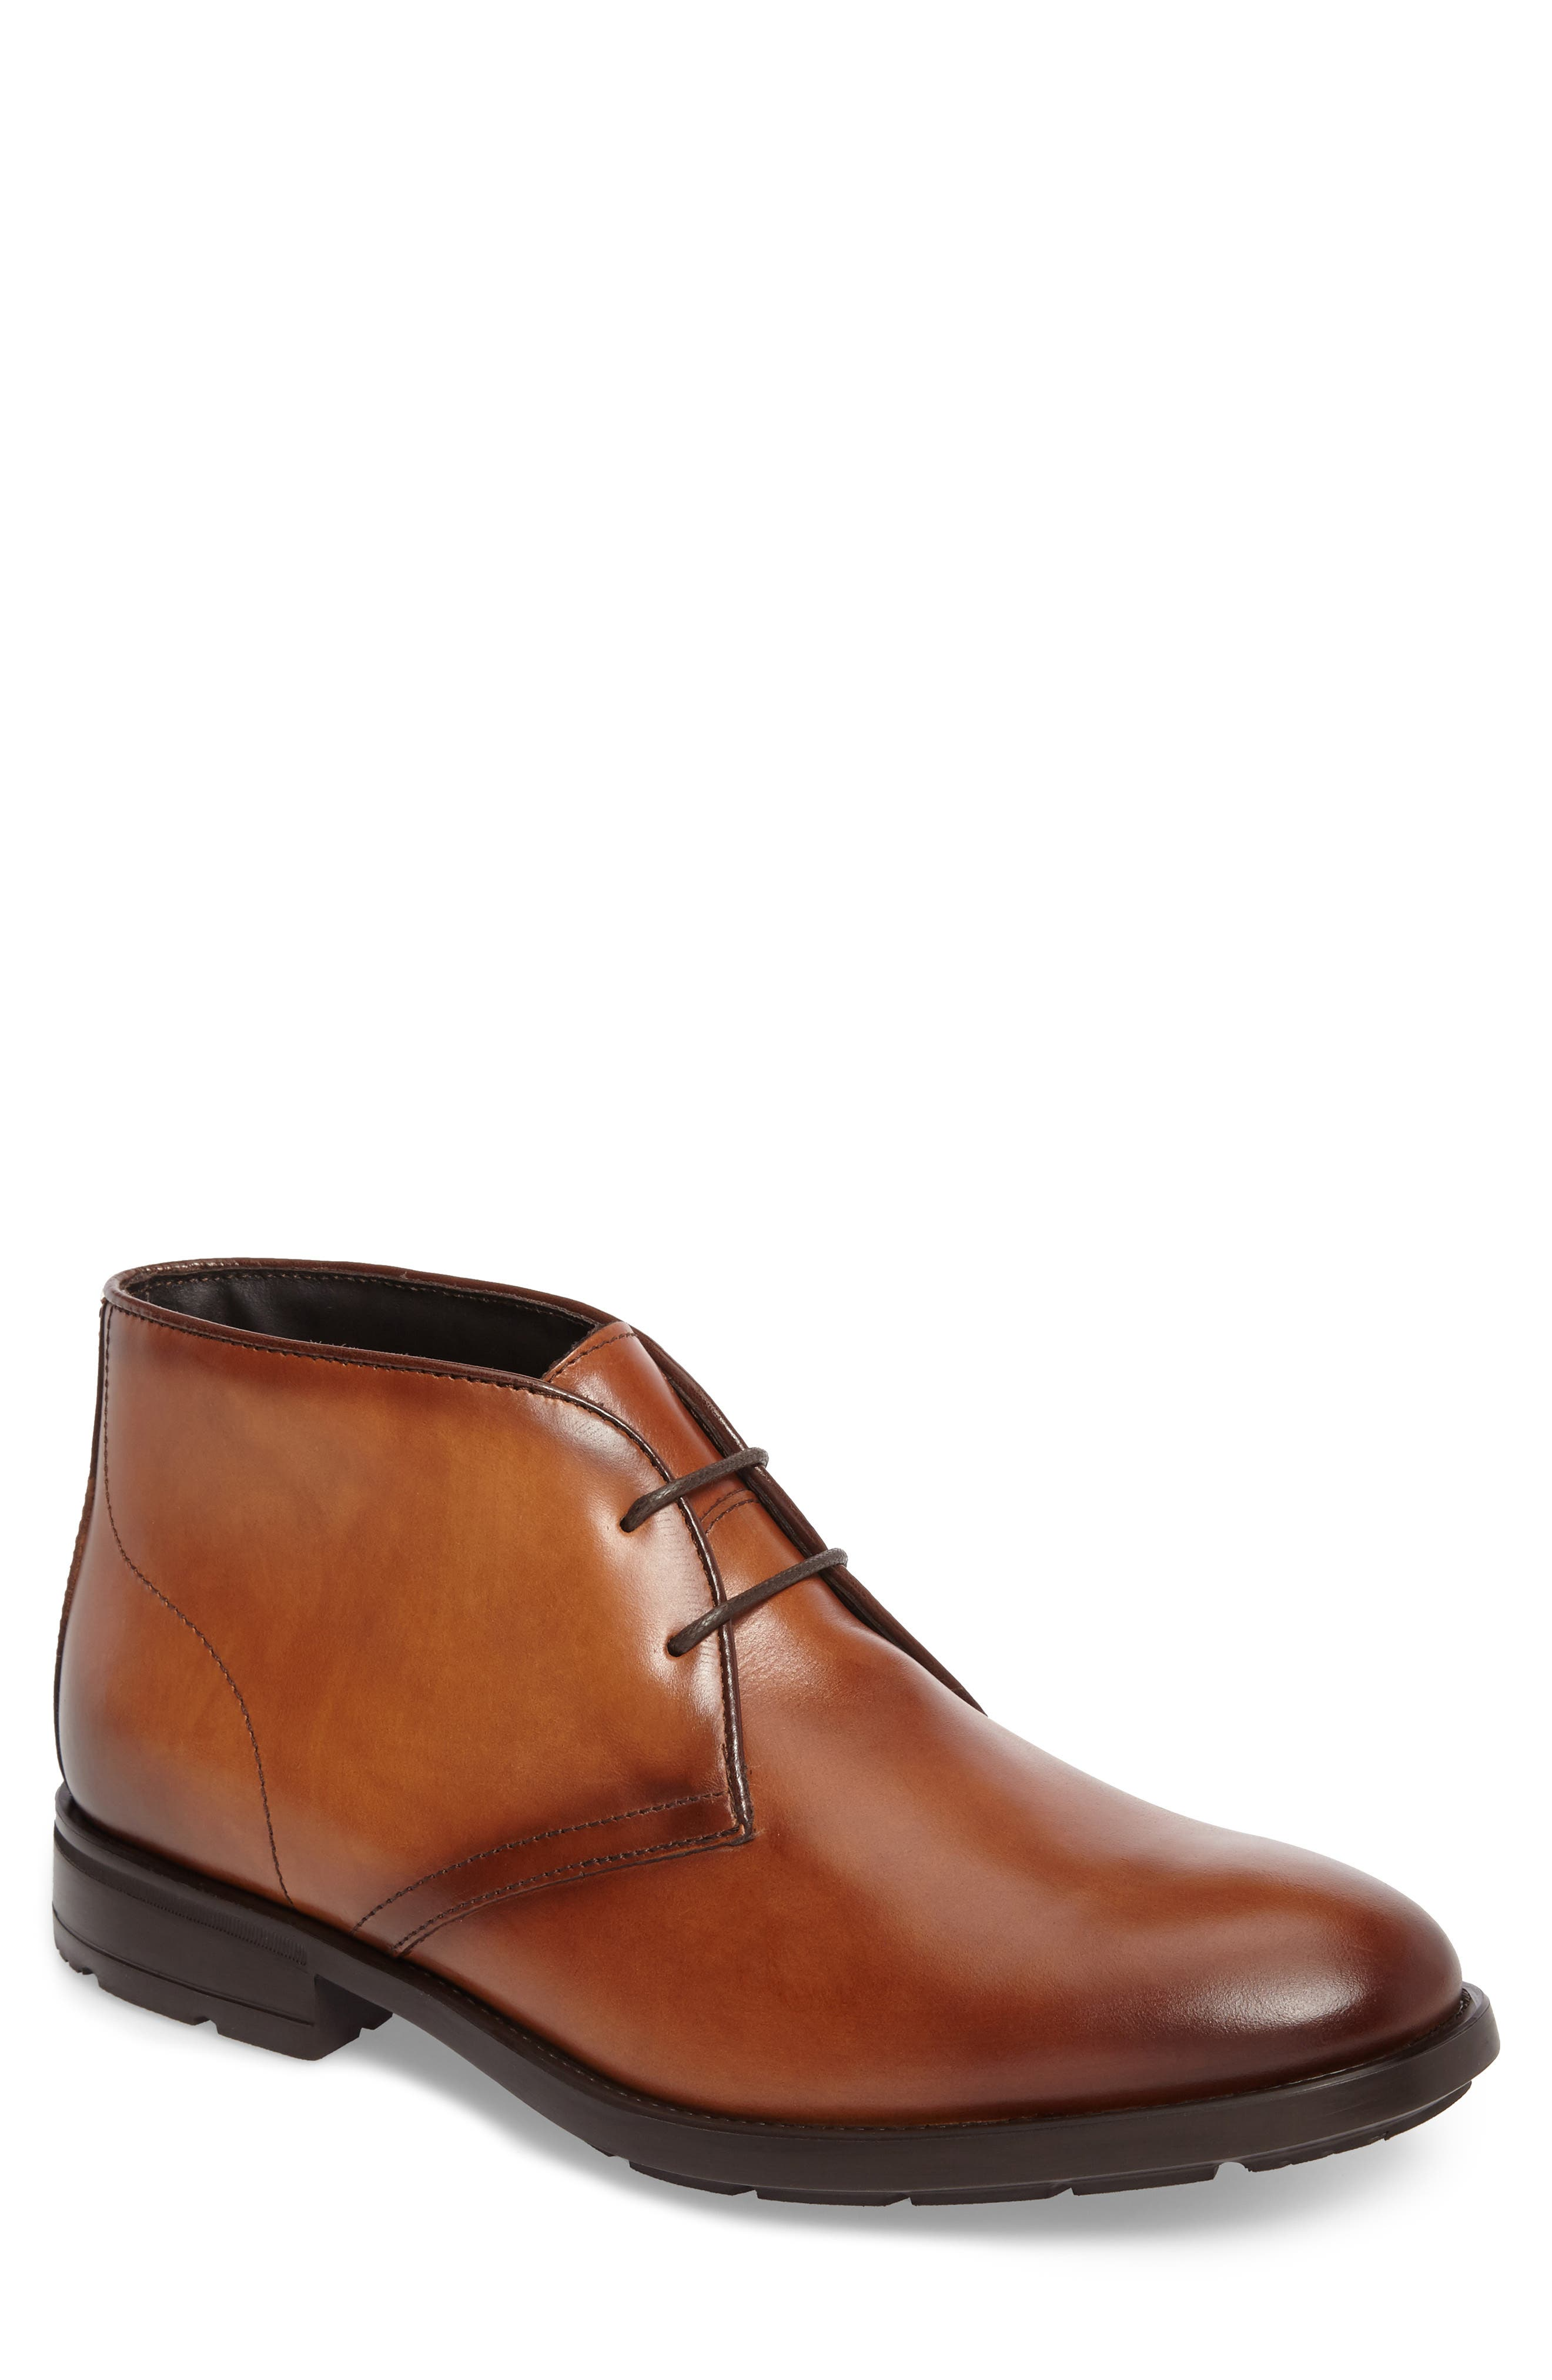 Conte Chukka Boot,                         Main,                         color, Cognac Leather